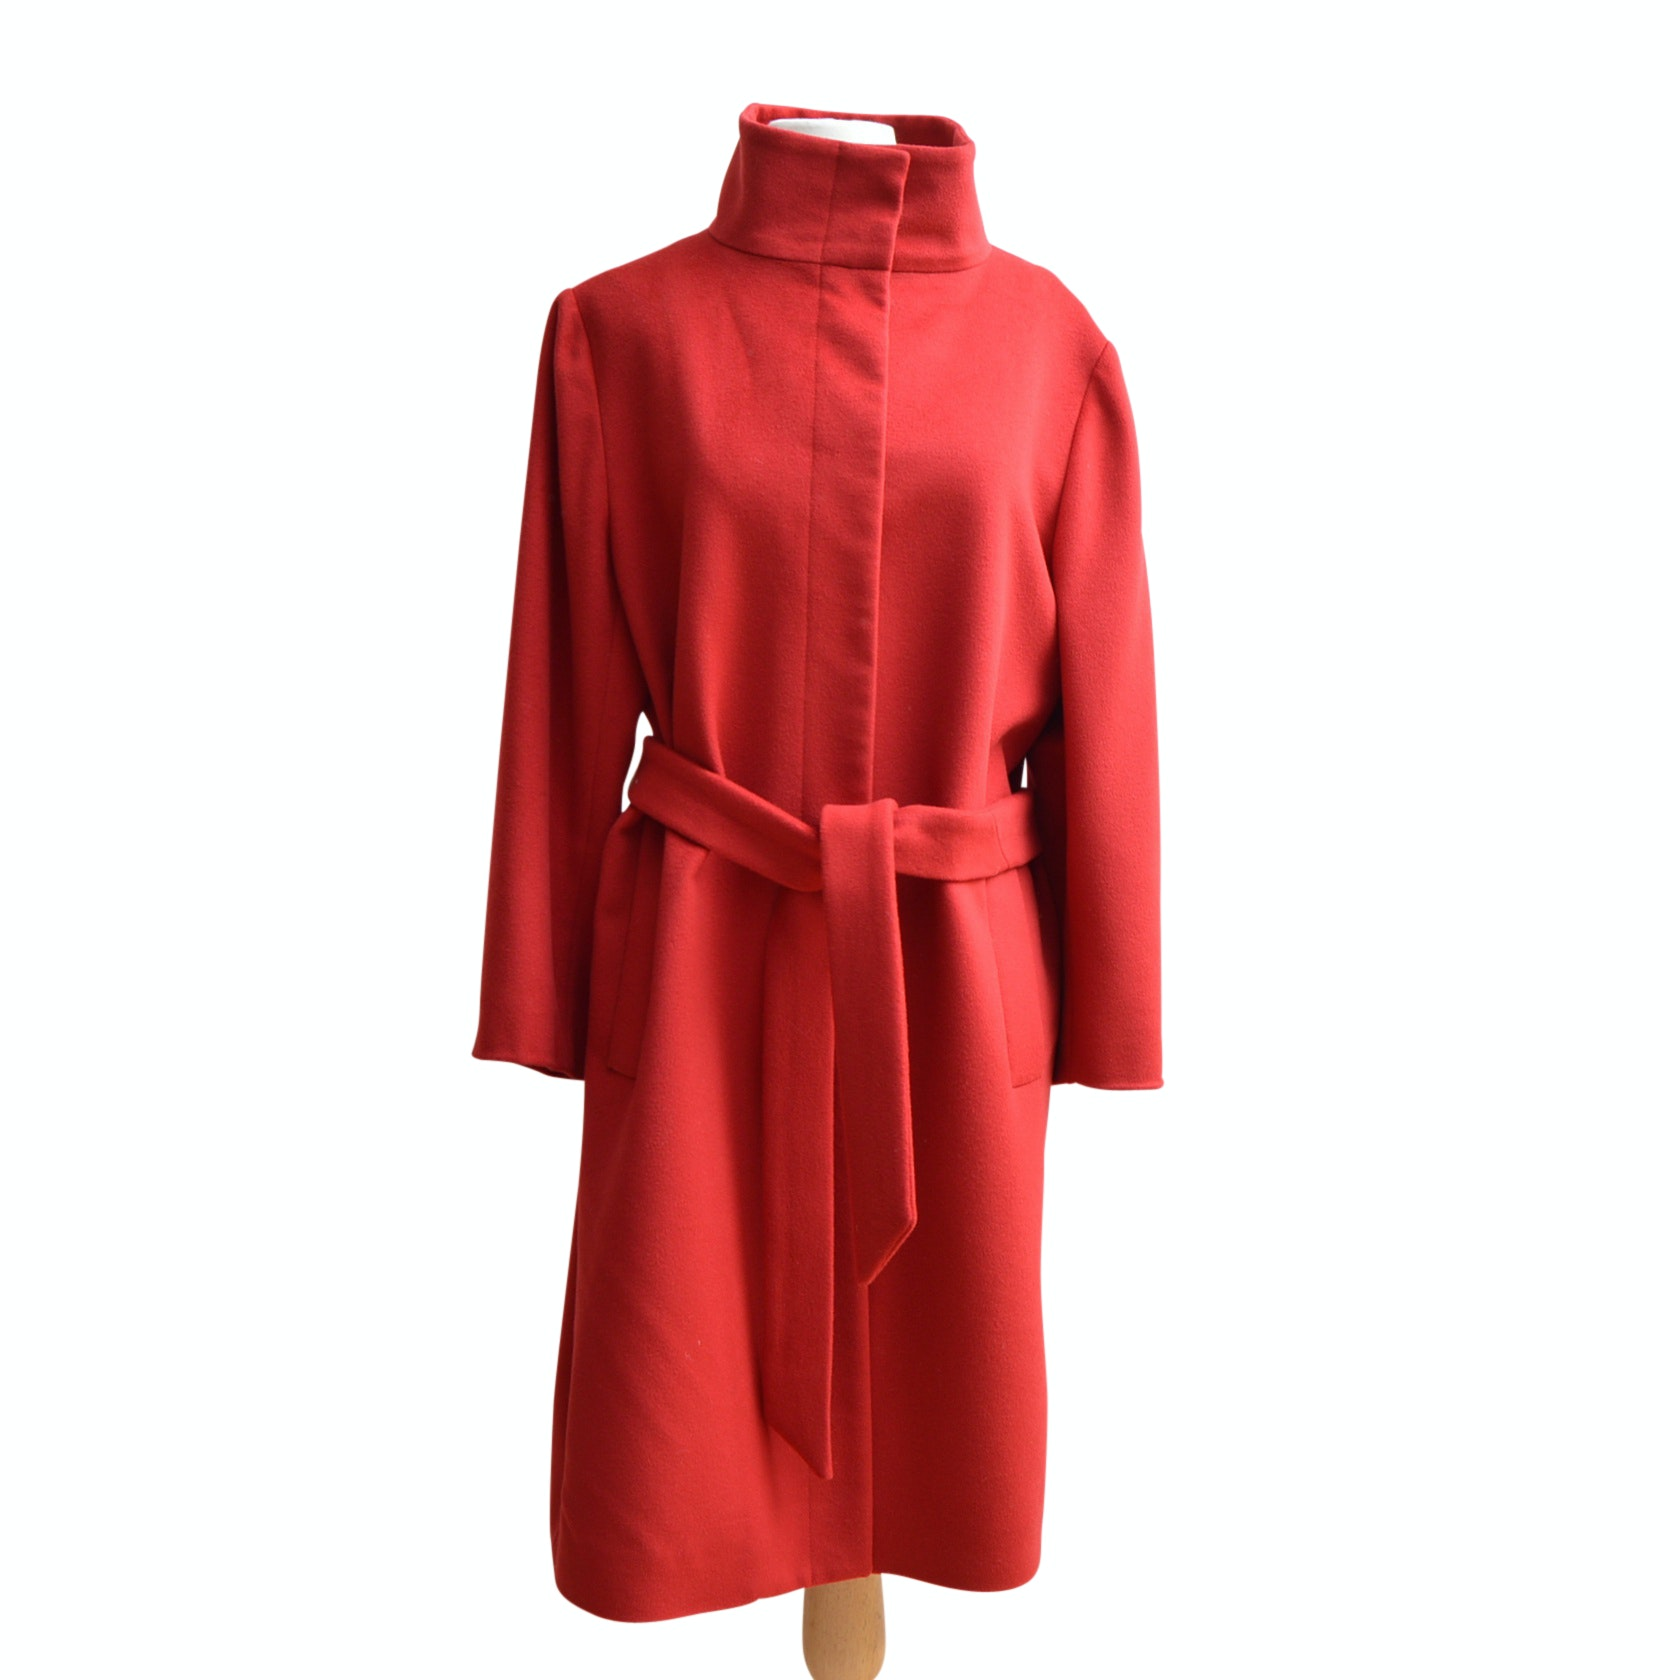 Burberry Red Wool and Cashmere Coat